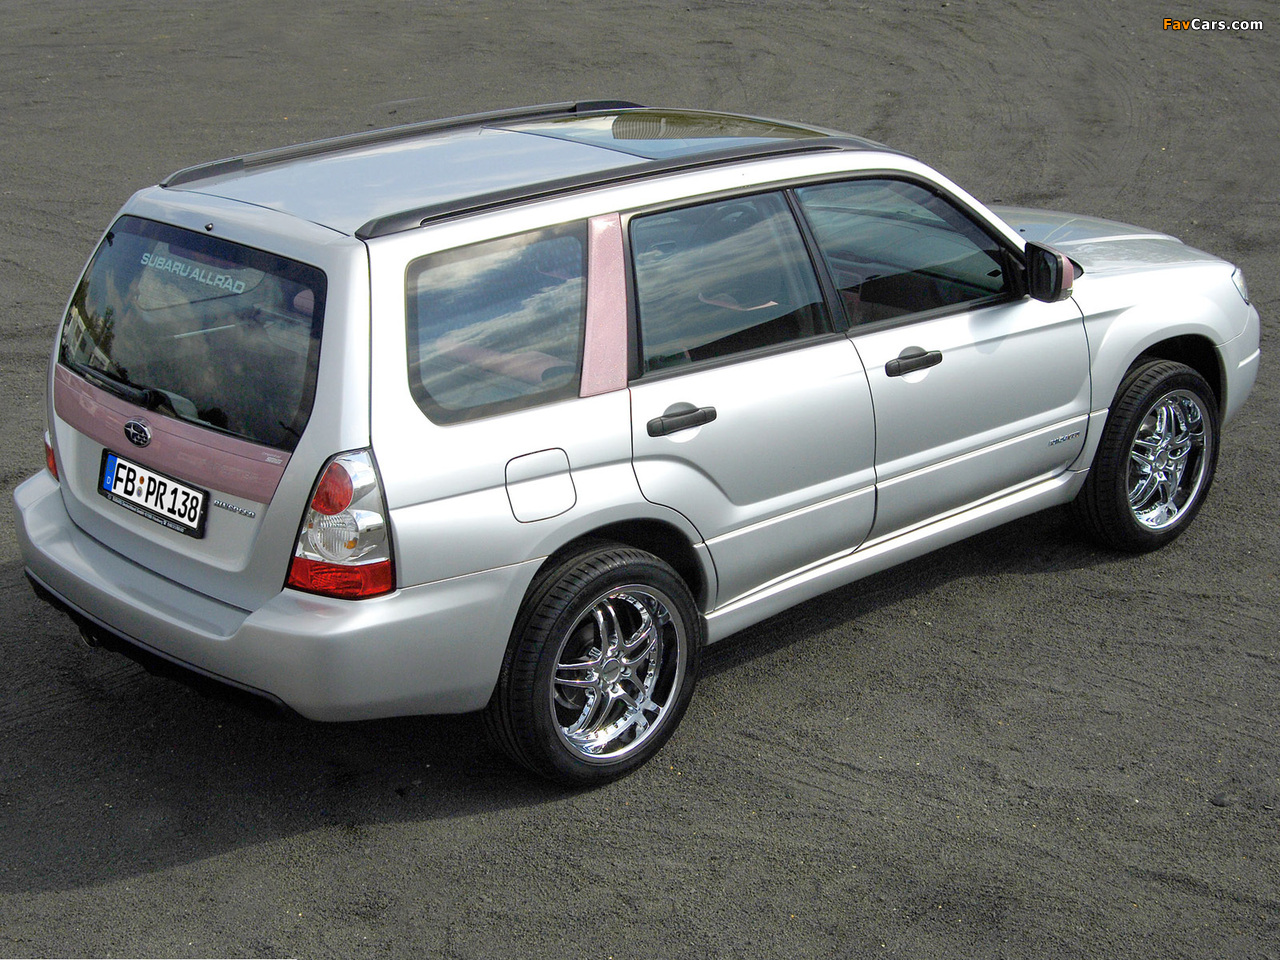 Rinspeed Subaru Forester Lady 2005 images (1280 x 960)